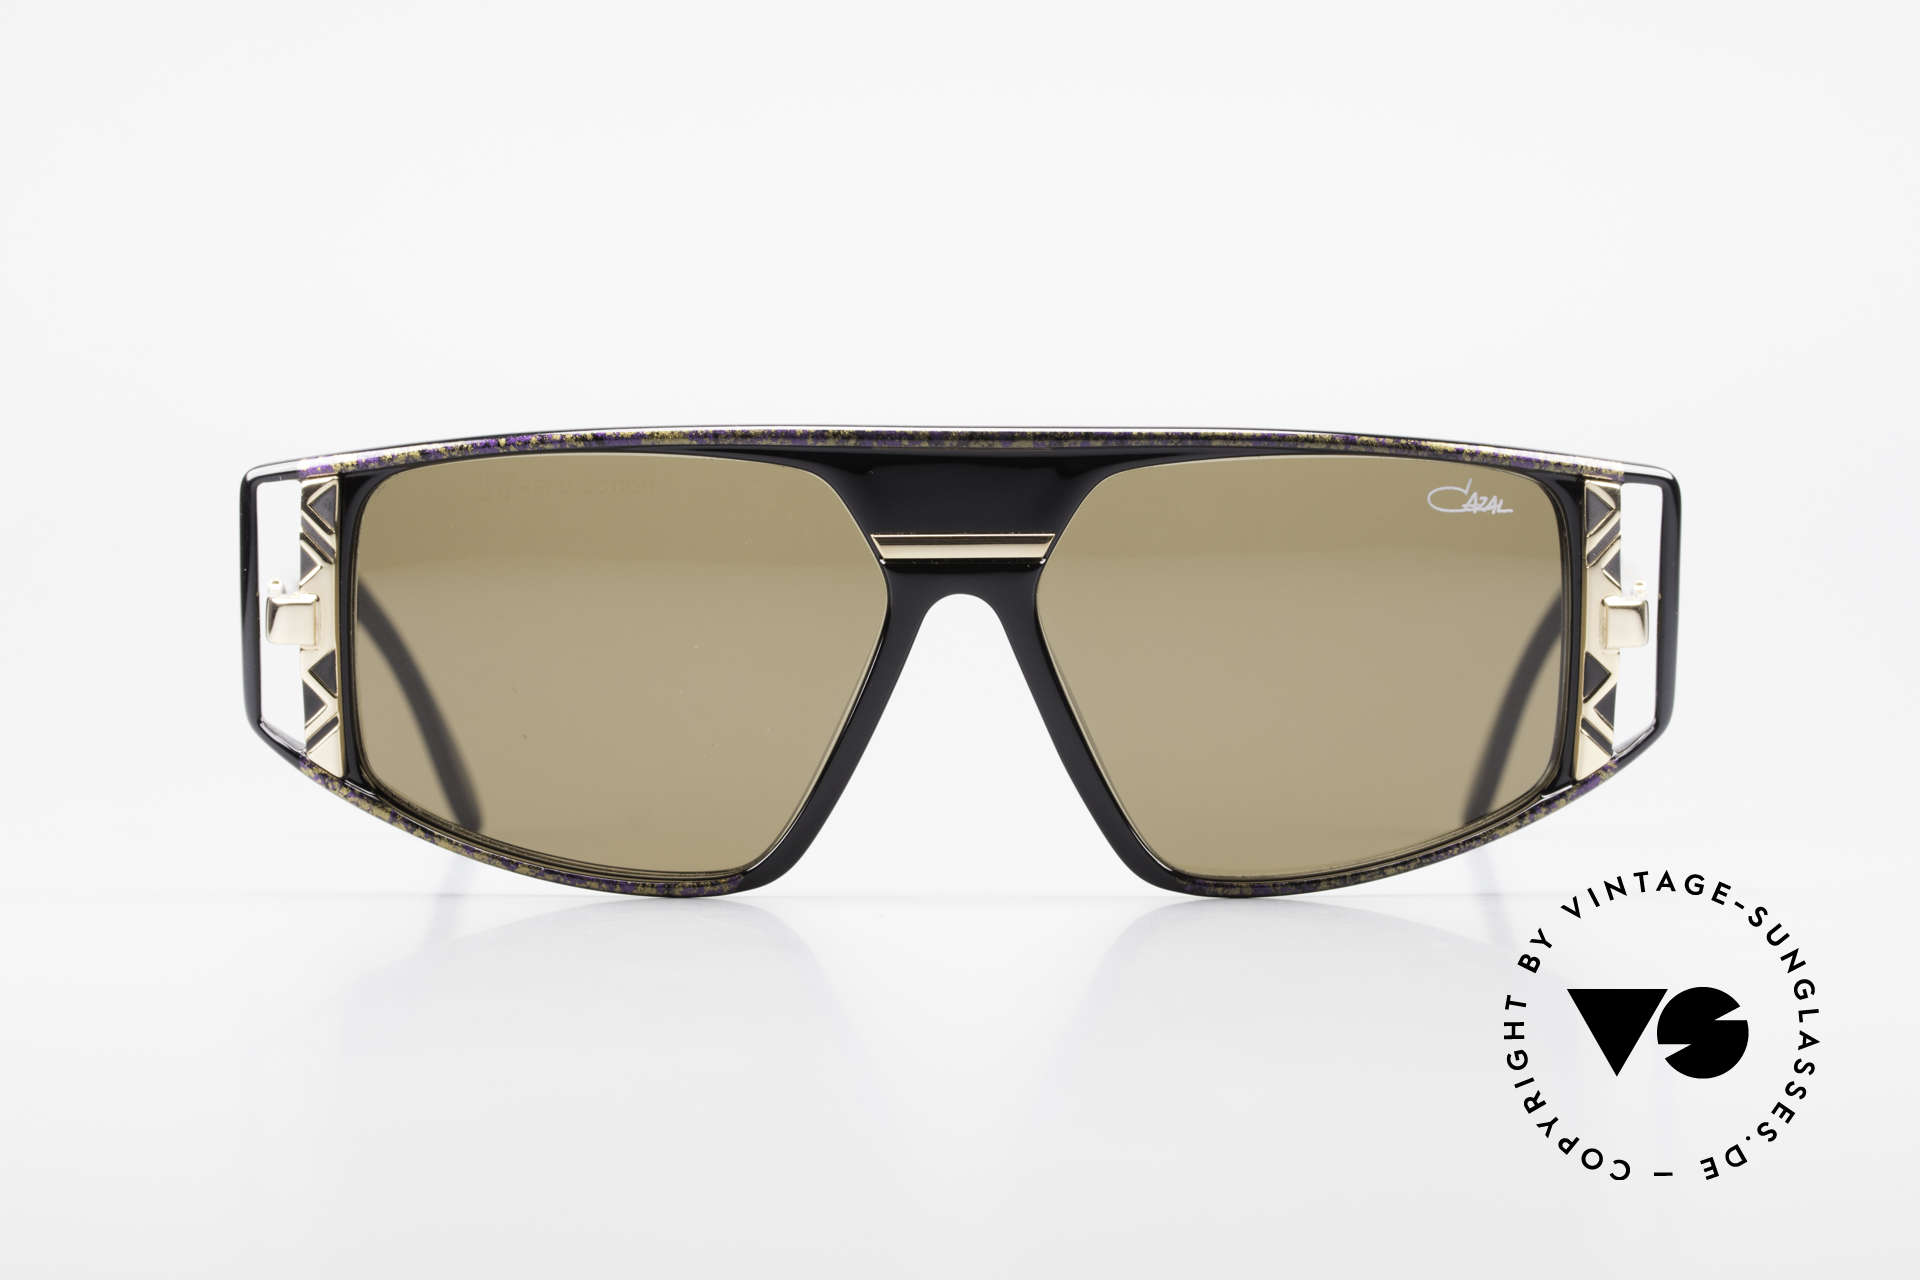 Cazal 874 Legendary 90's Sunglasses, flashy & complex composition of colors & materials, Made for Men and Women